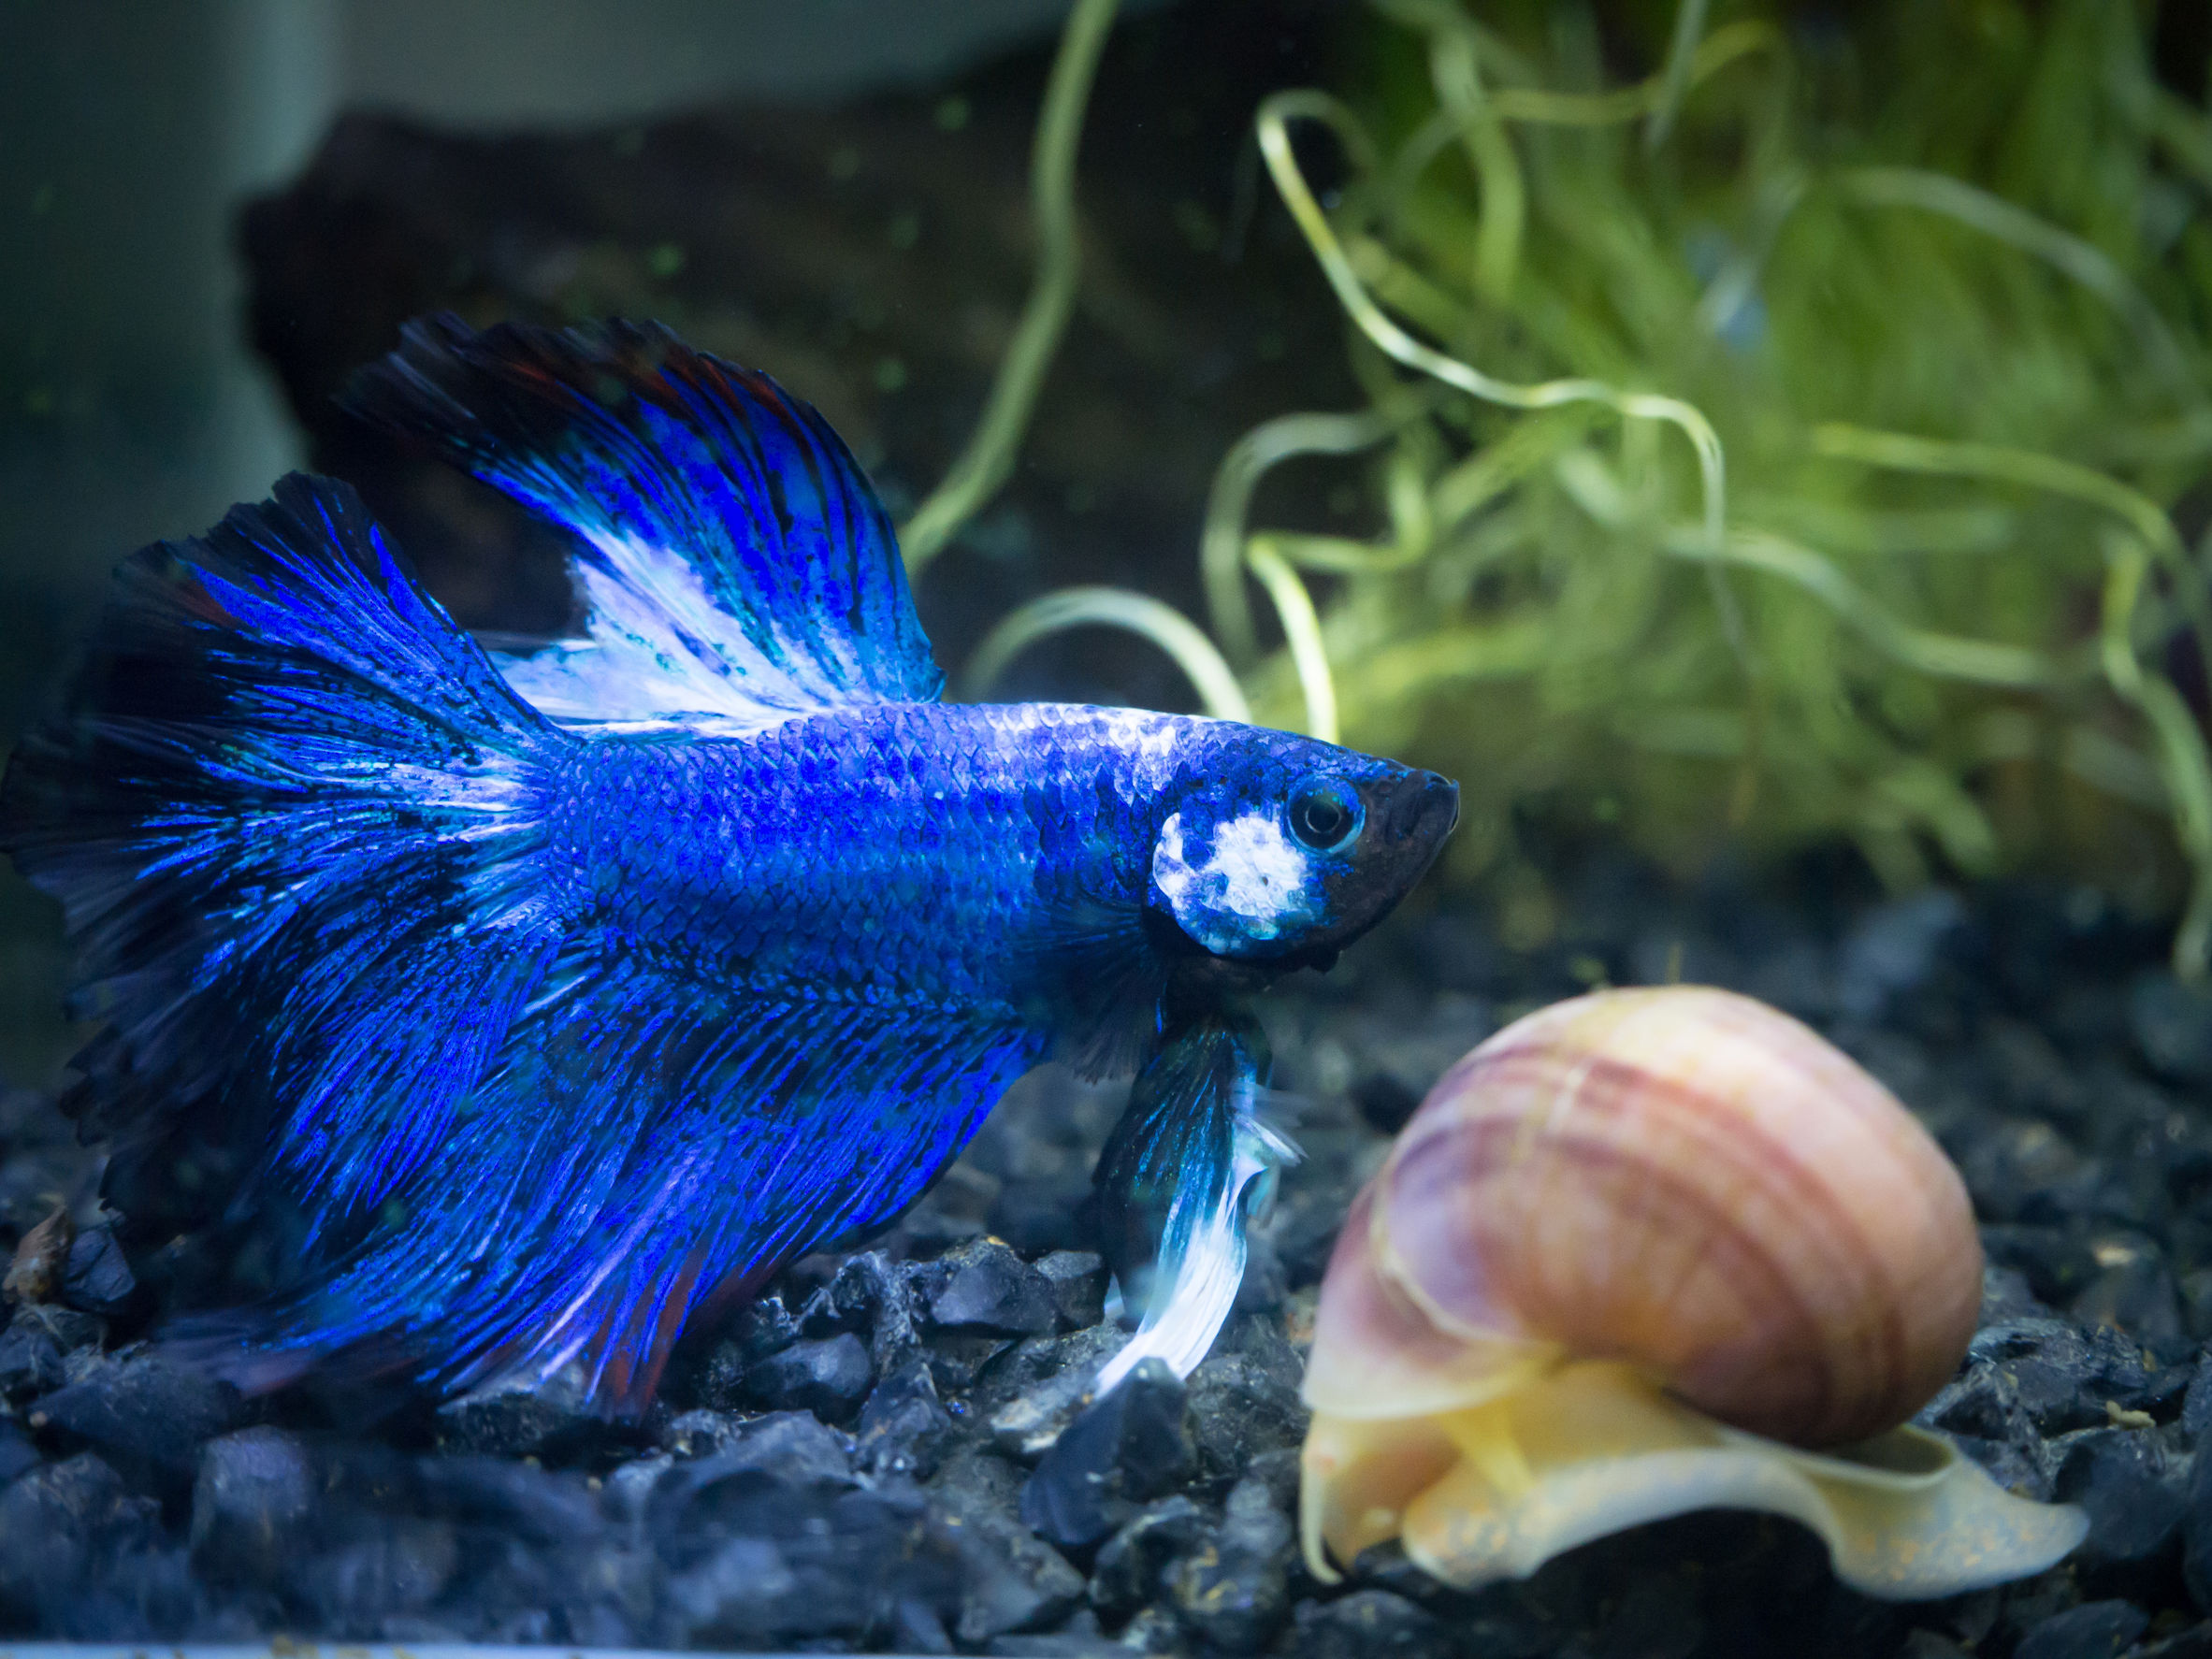 Blue betta swimming next to snail